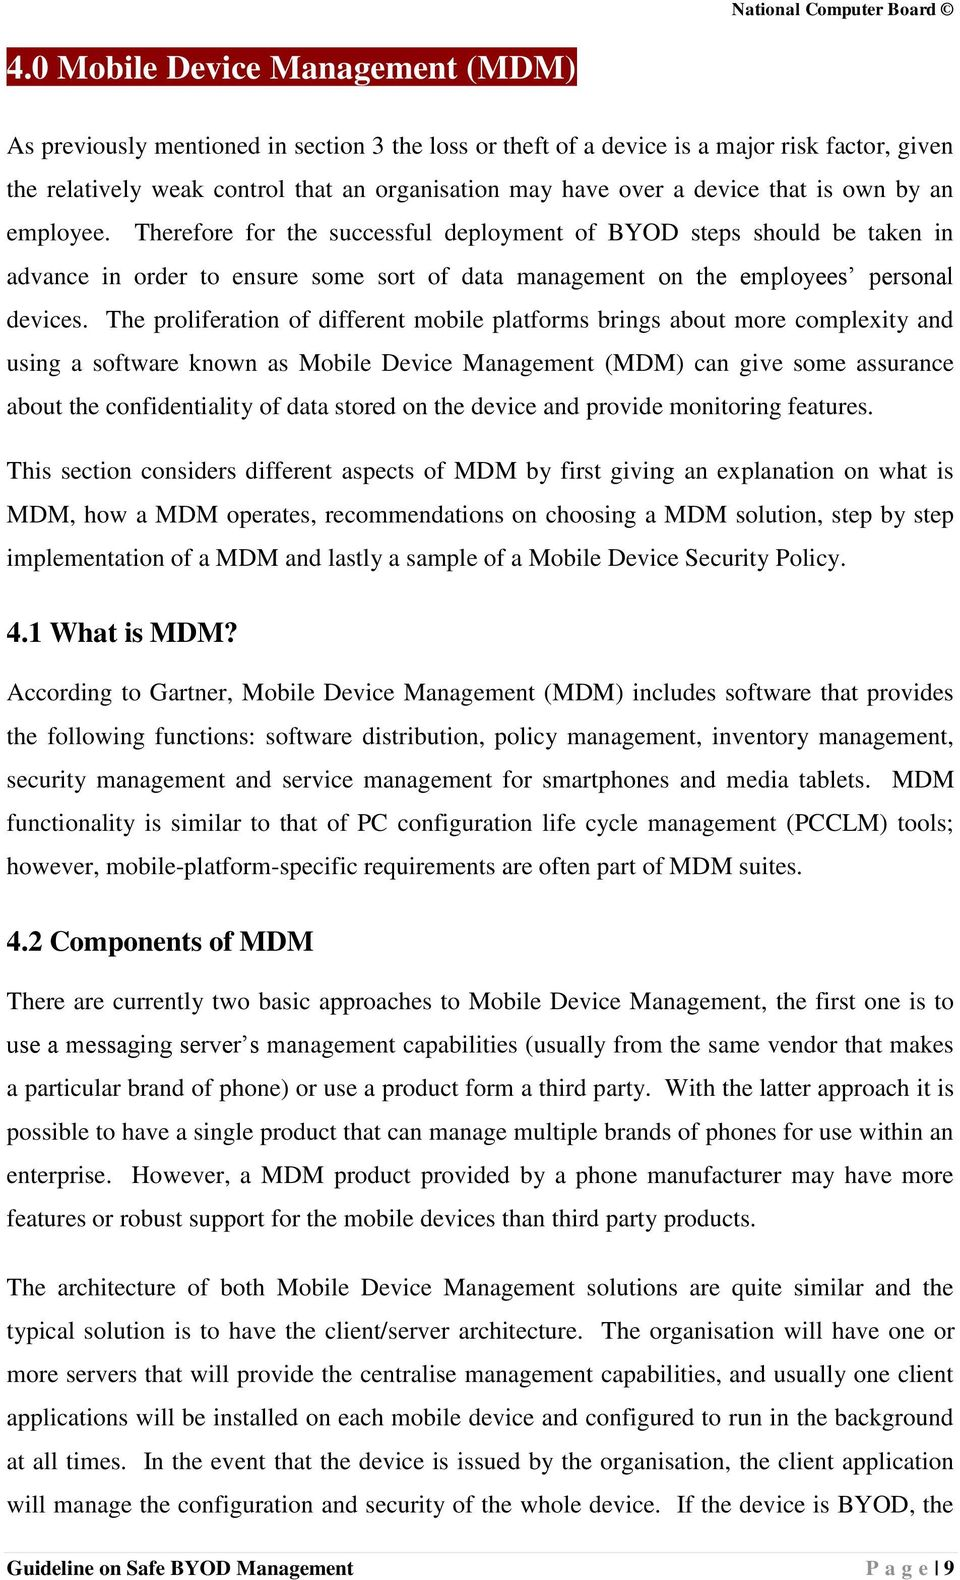 The proliferation of different mobile platforms brings about more complexity and using a software known as Mobile Device Management (MDM) can give some assurance about the confidentiality of data